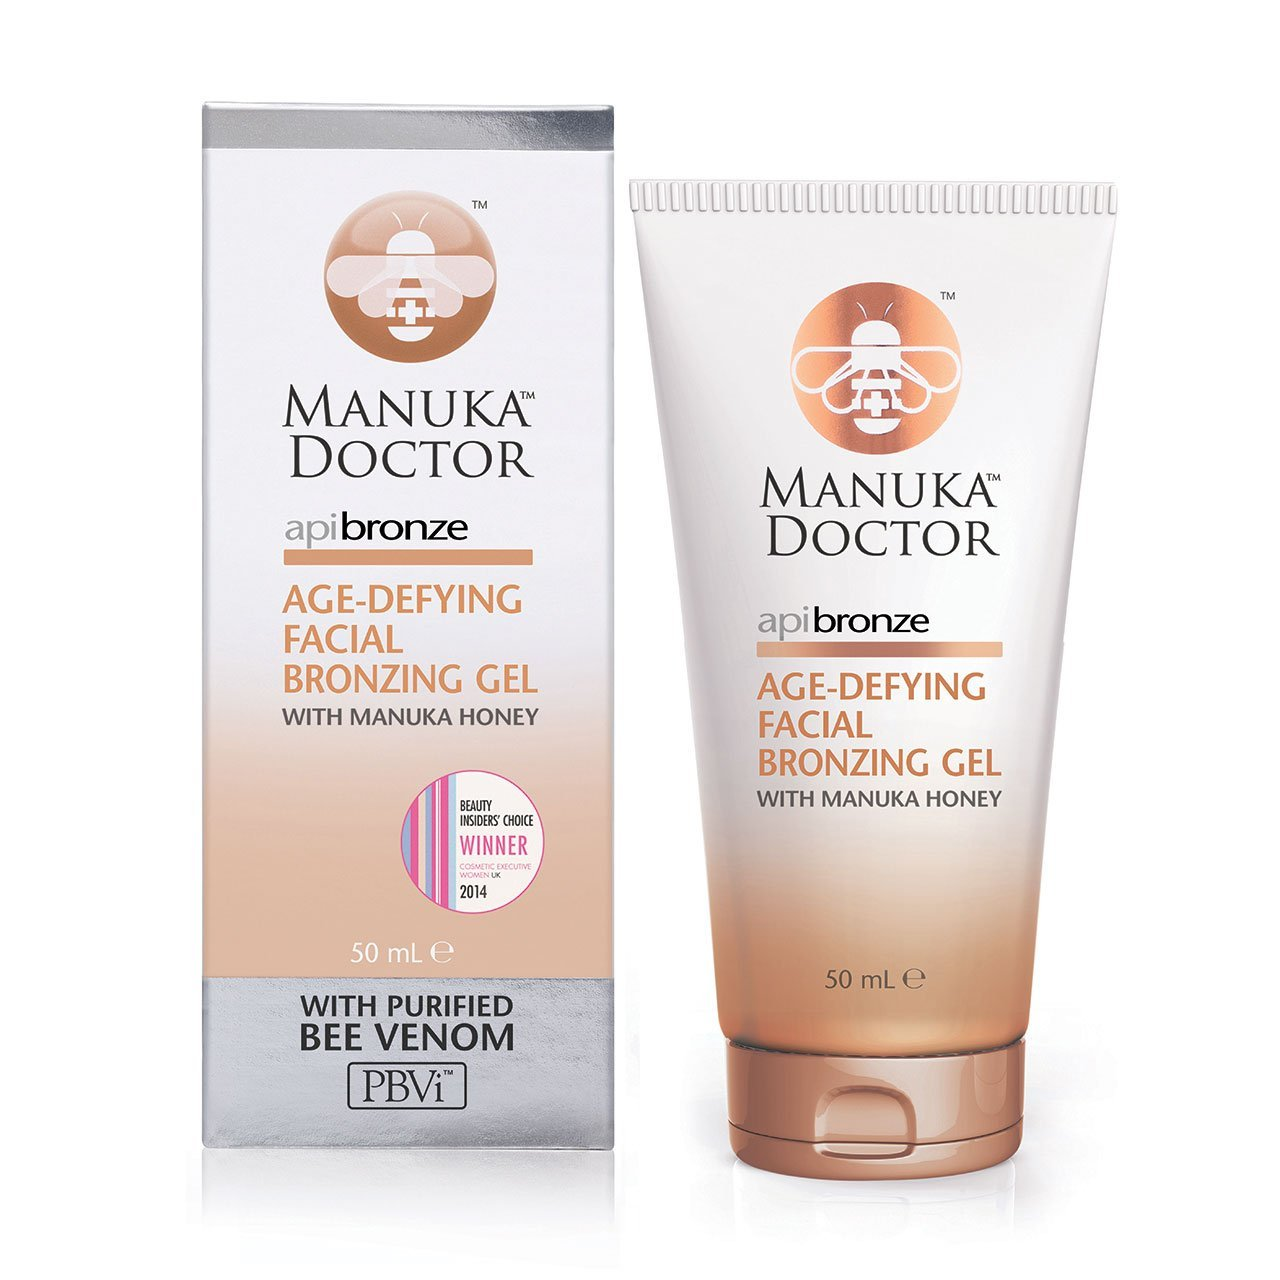 Manuka Doctor ApiBronze Age-Defying Facial Bronzing Gel 50 ml by Manuka Doctor MD601